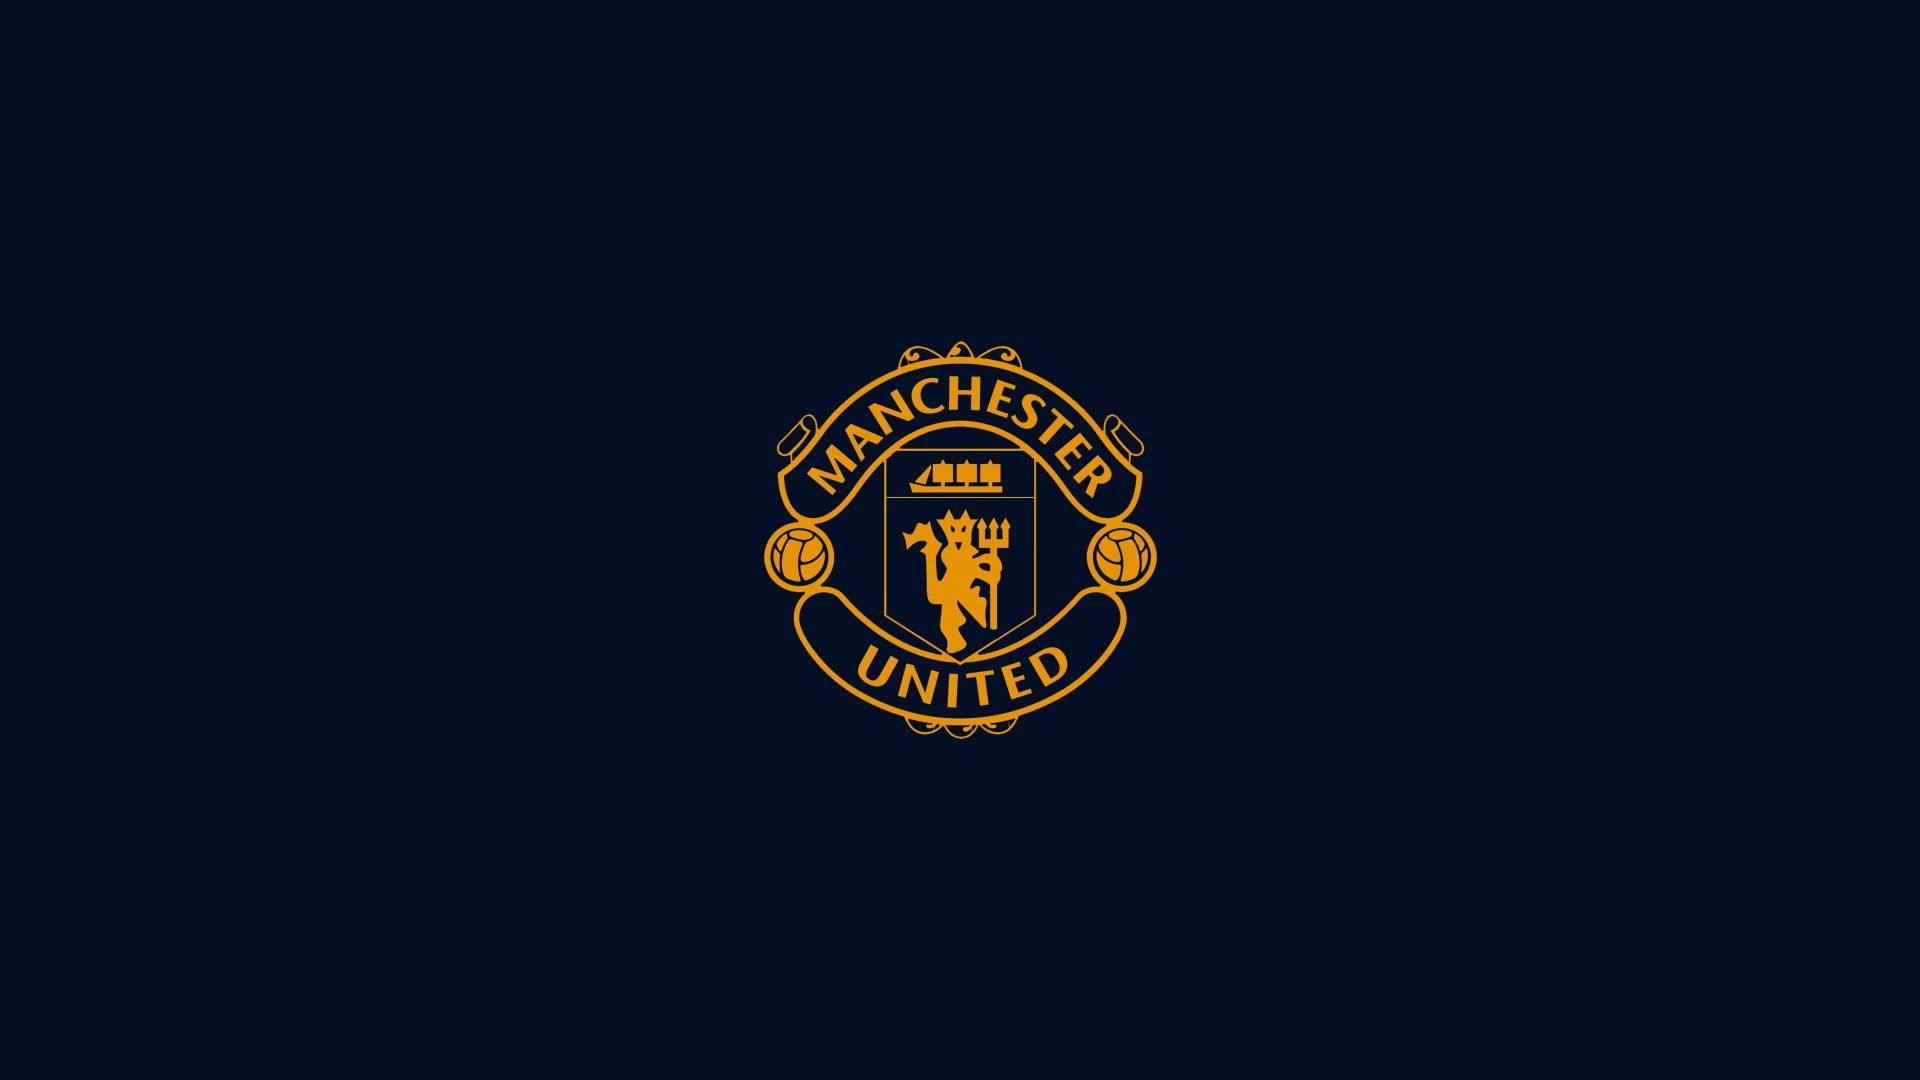 Find Manchester United Logo Wallpapers For Your Mobile And